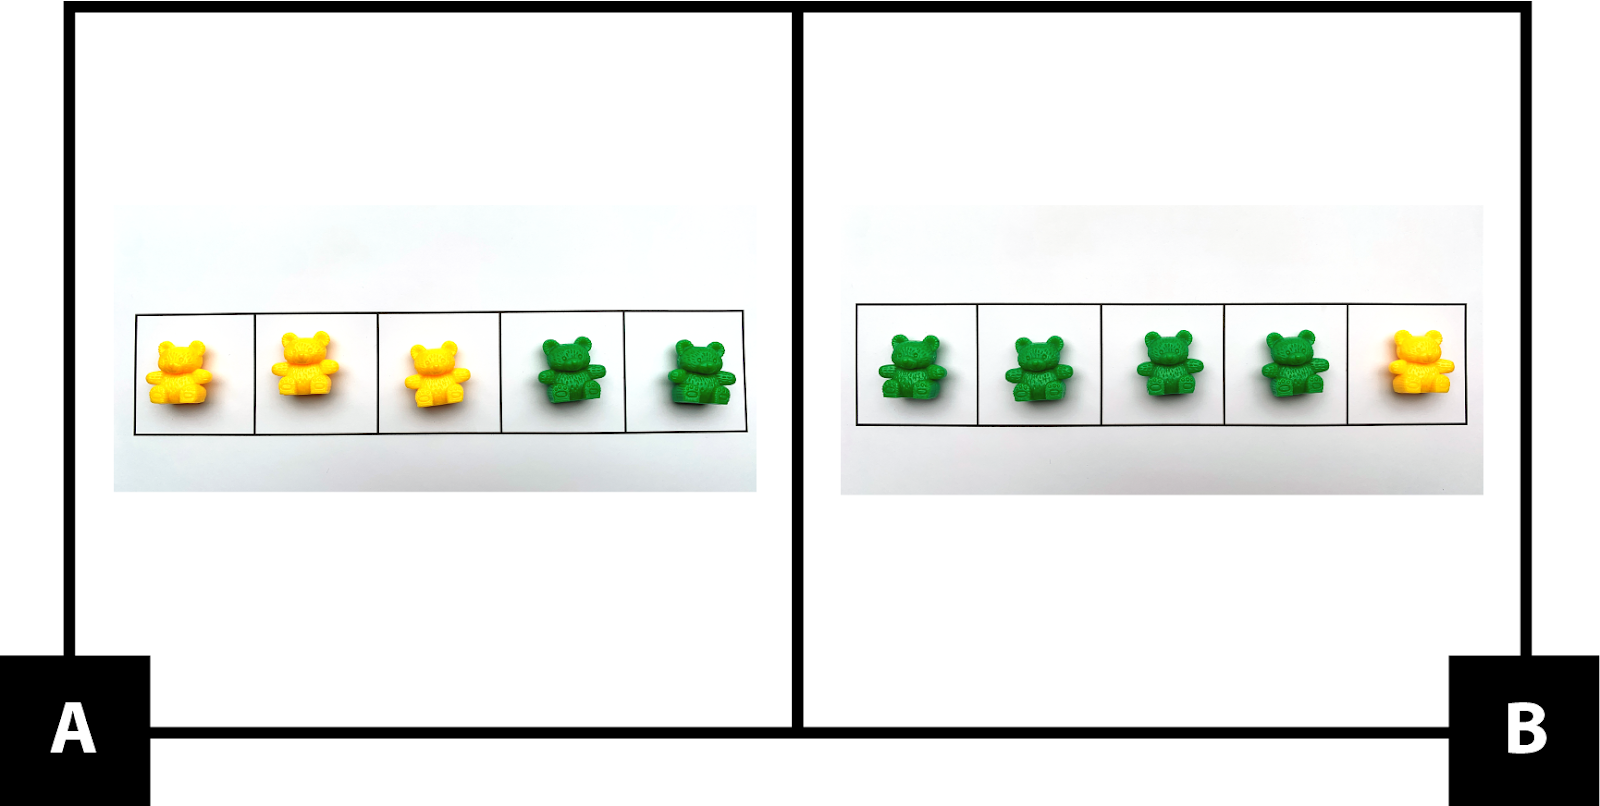 A: A five-frame with 3 yellow teddy bears and 2 green bears. B: A five-frame with 4 green teddy bears and 1 yellow bear.